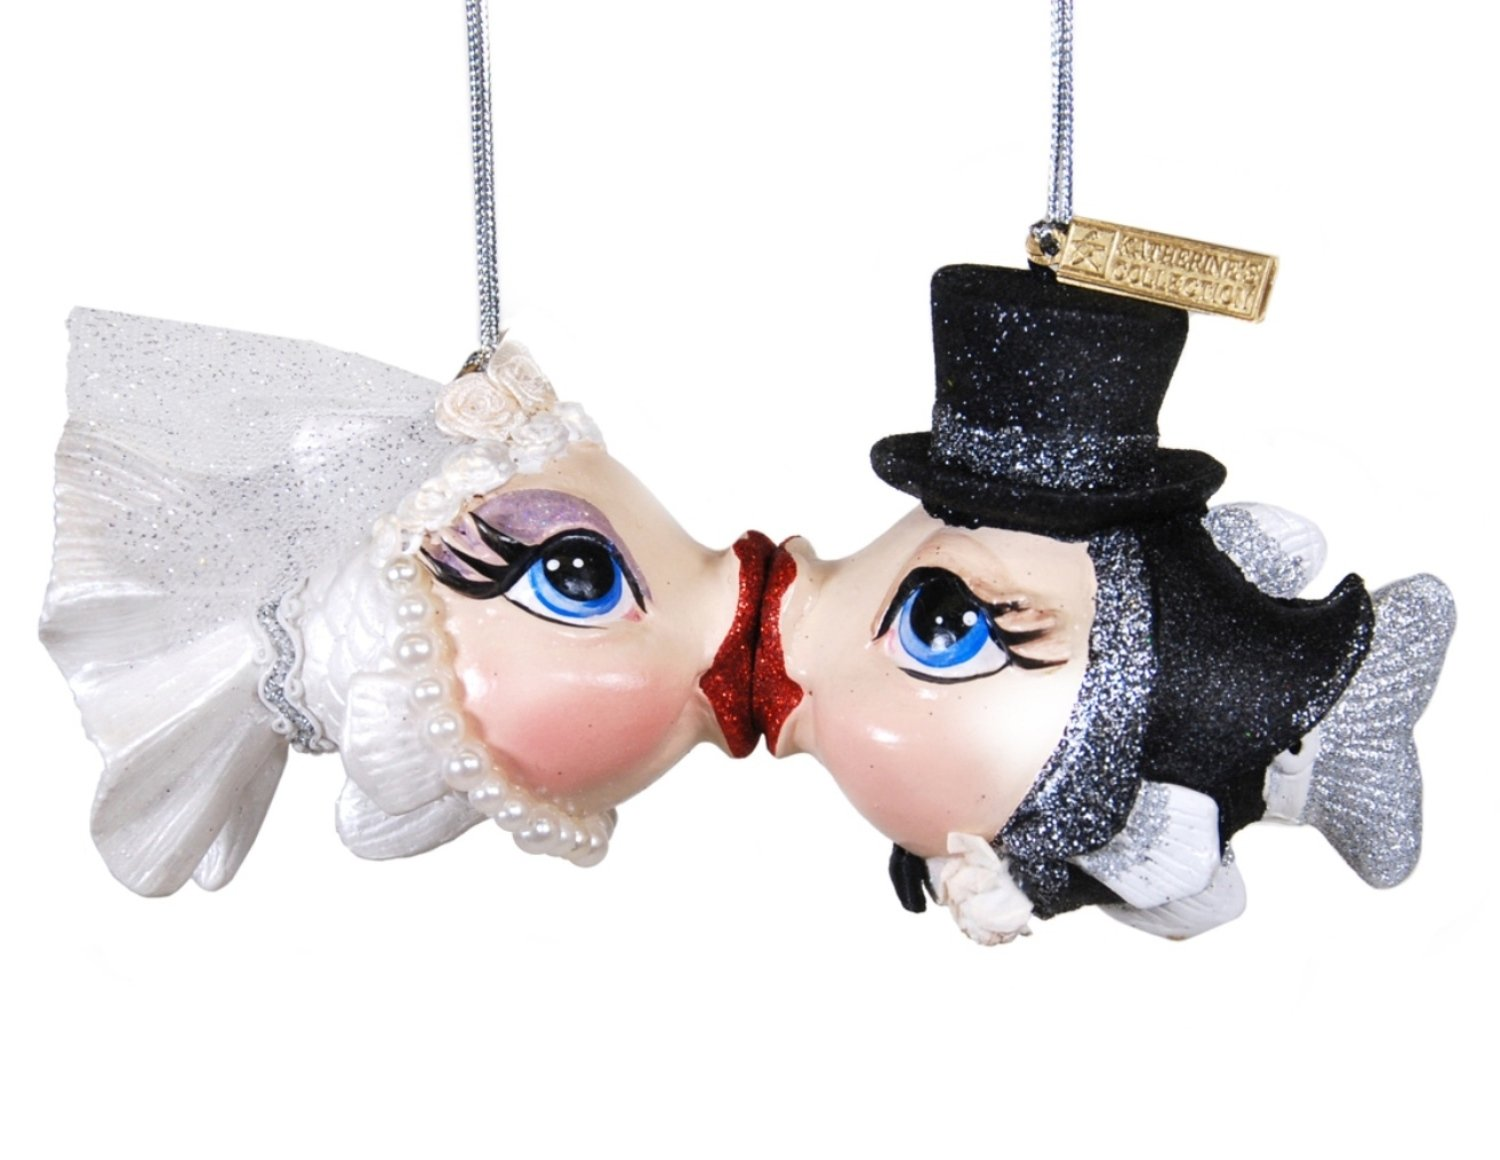 Kissing fish ornament - Amazon Com Getting Hooked Bride And Groom Kissing Fish Christmas Holiday Ornaments Set Of 2 Home Kitchen